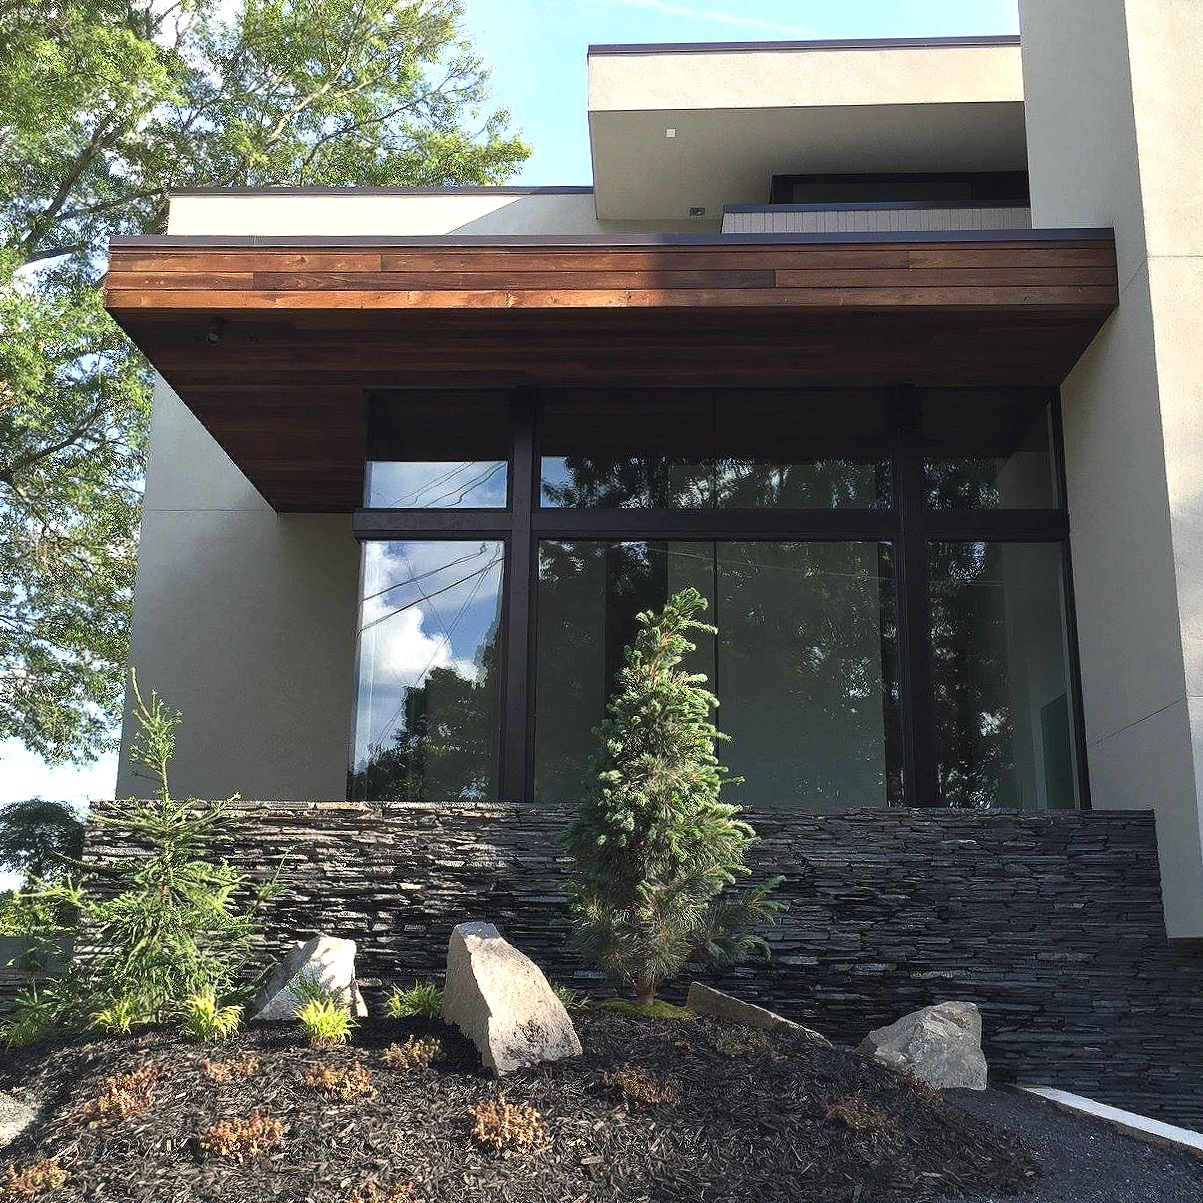 West+Architecture+-+Thermo+Siding+%2822%29.jpg